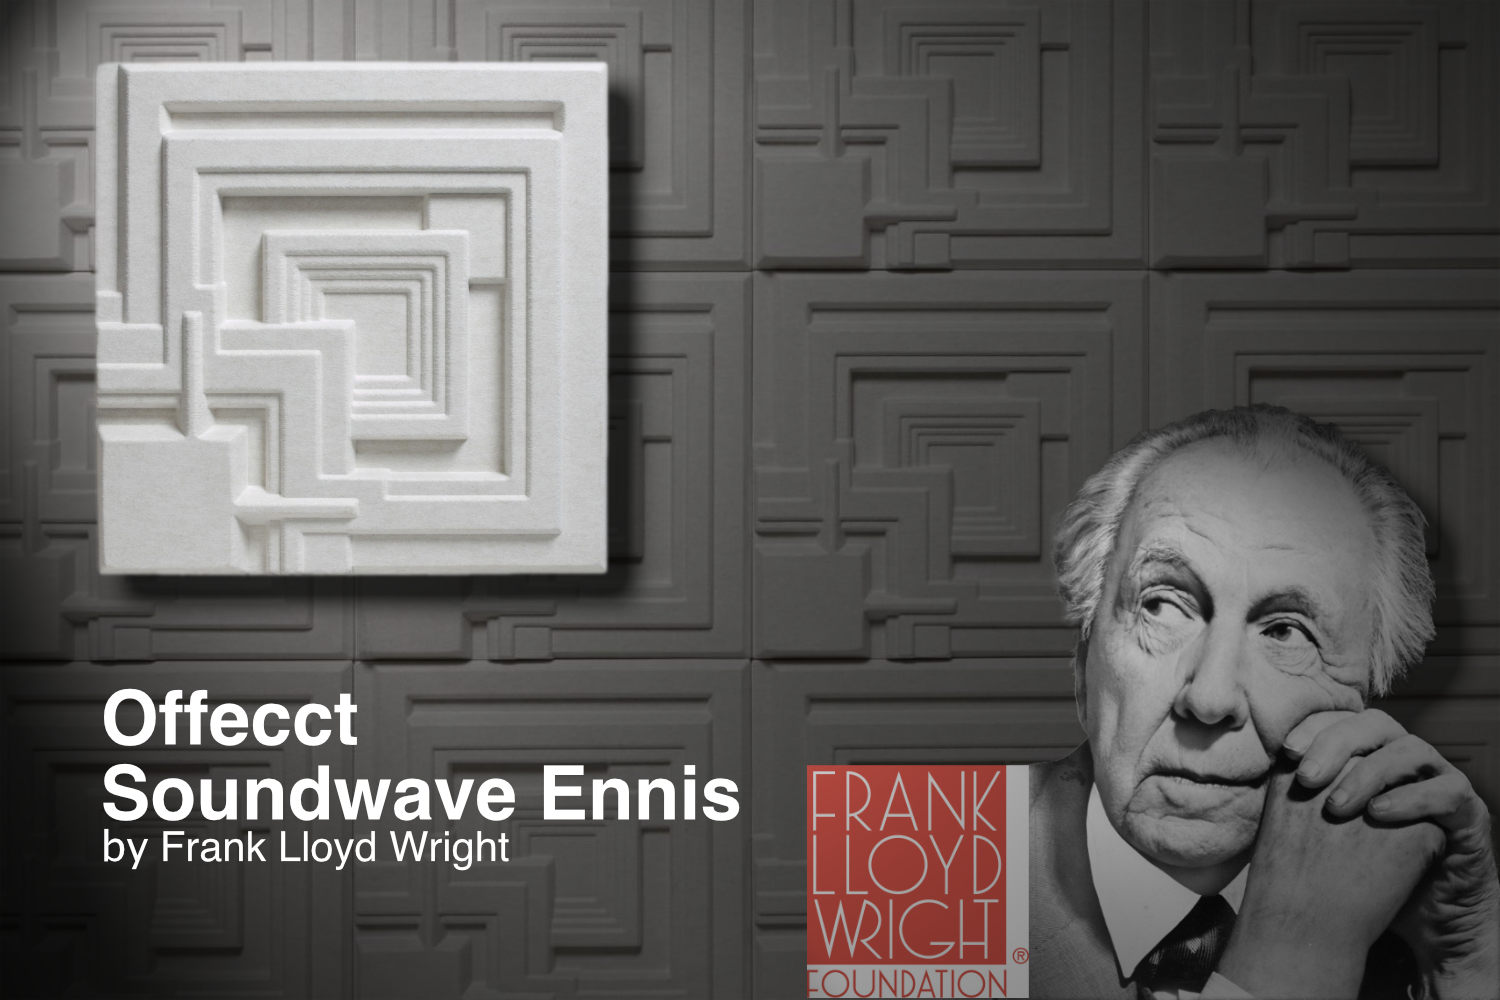 Offecct Soundwave Ennis by Frank Lloyd Wright